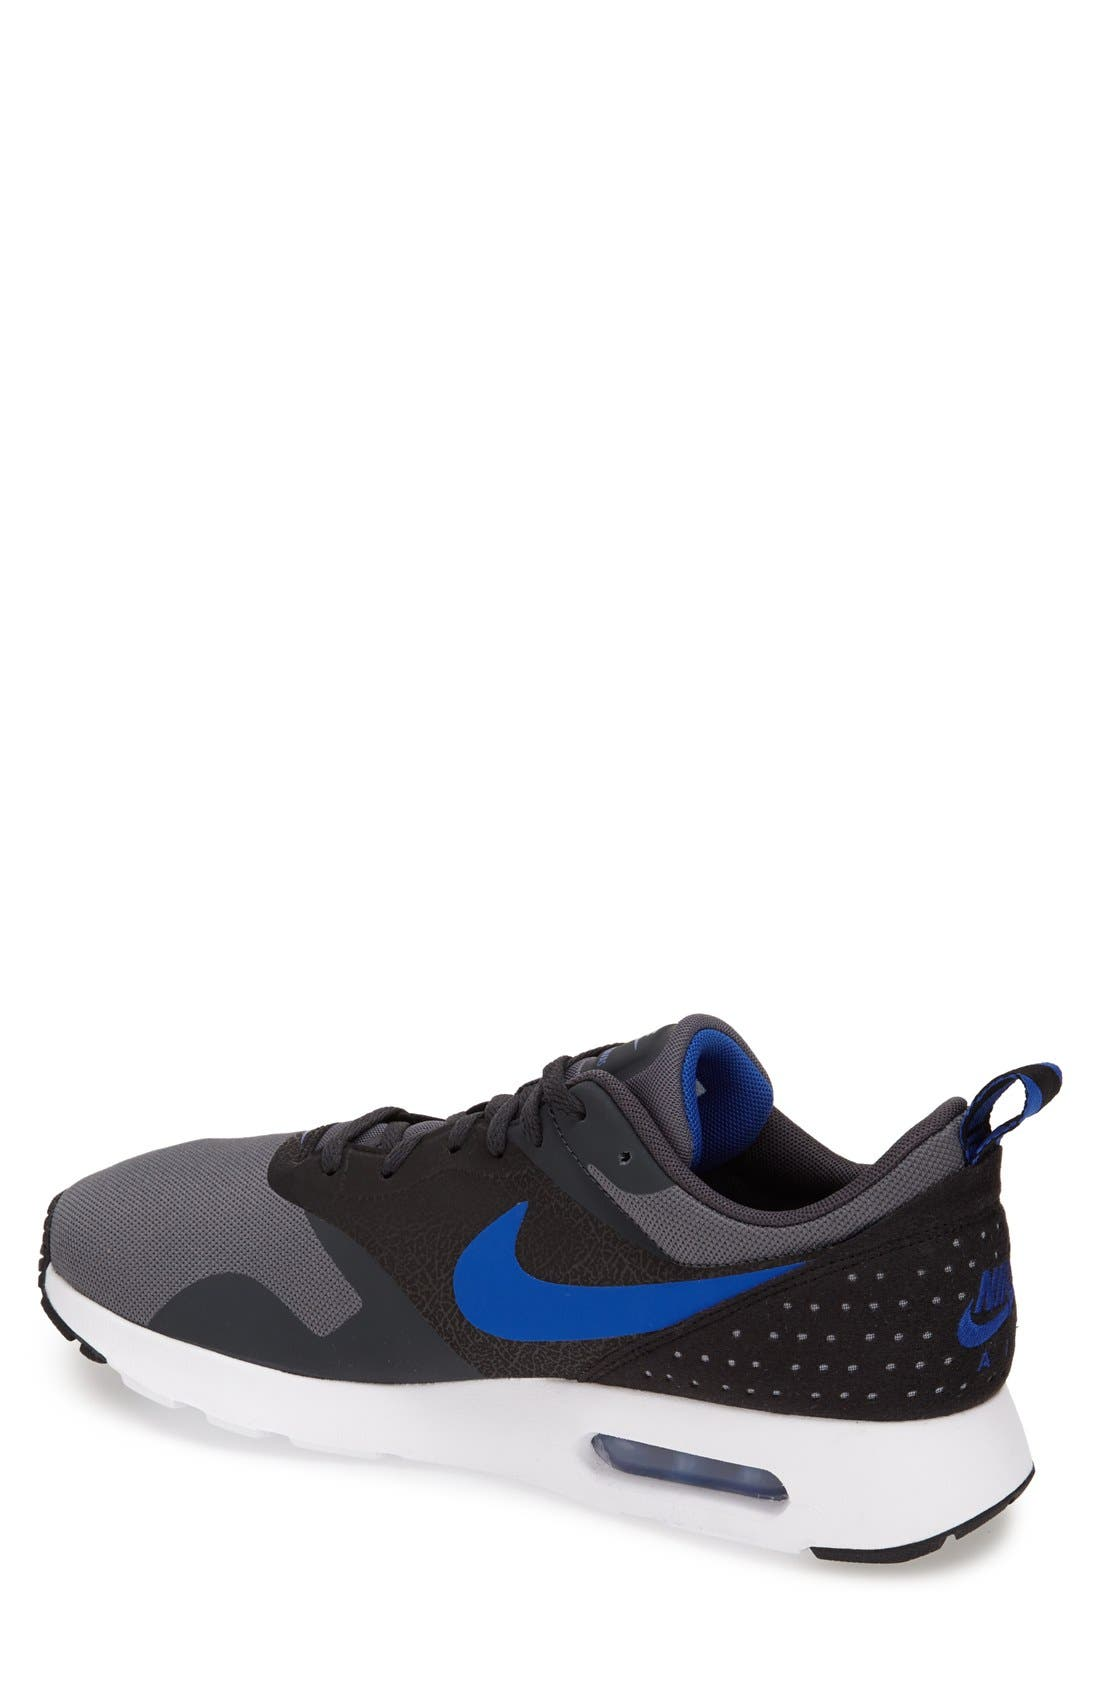 ,                             'Air Max Tavas' Sneaker,                             Alternate thumbnail 106, color,                             064